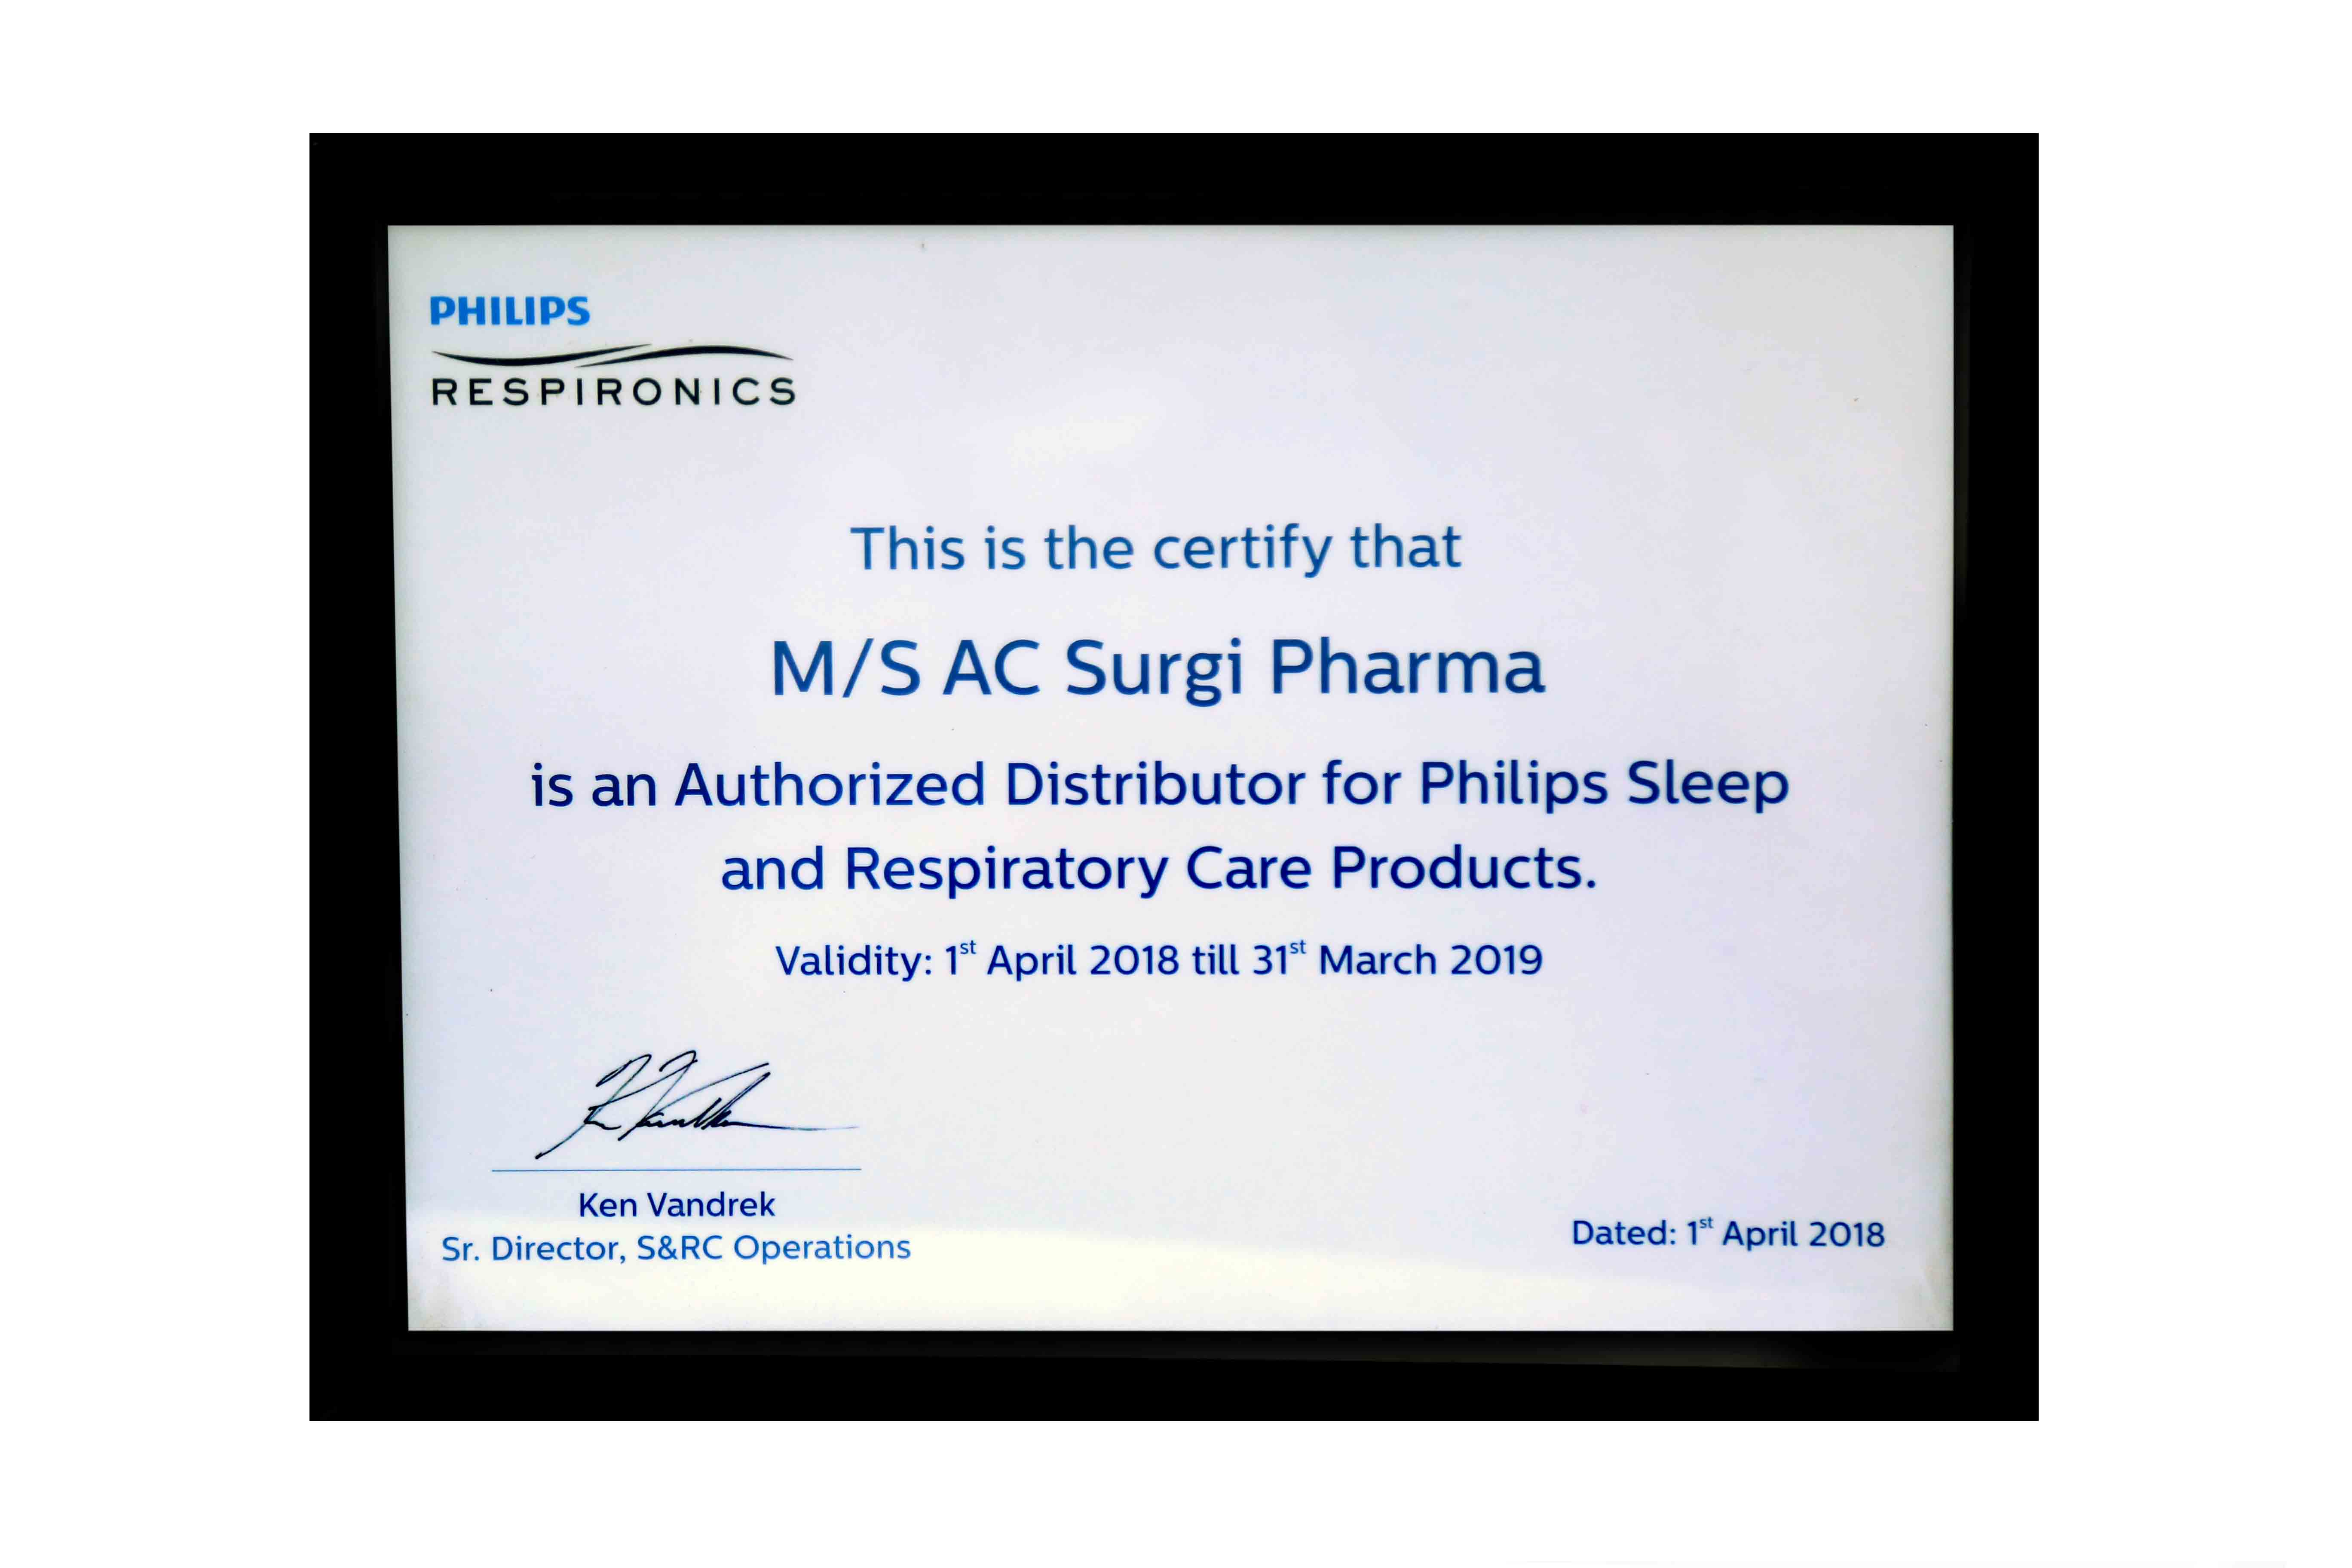 Certification for Authorised Distributor By Philips